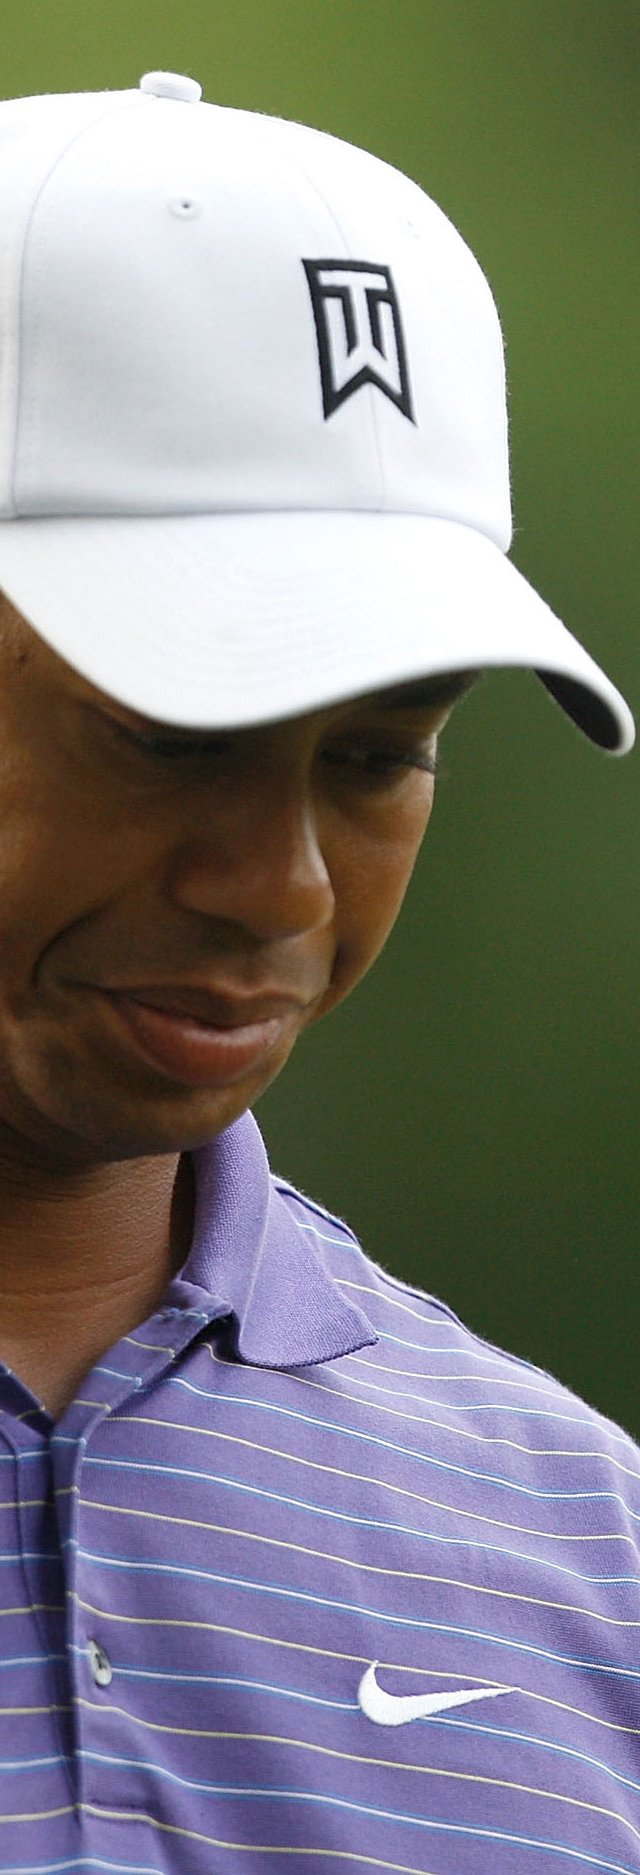 Tiger Woods looks down during the third round of the Quail Hollow Championship at the Quail Hollow Club.